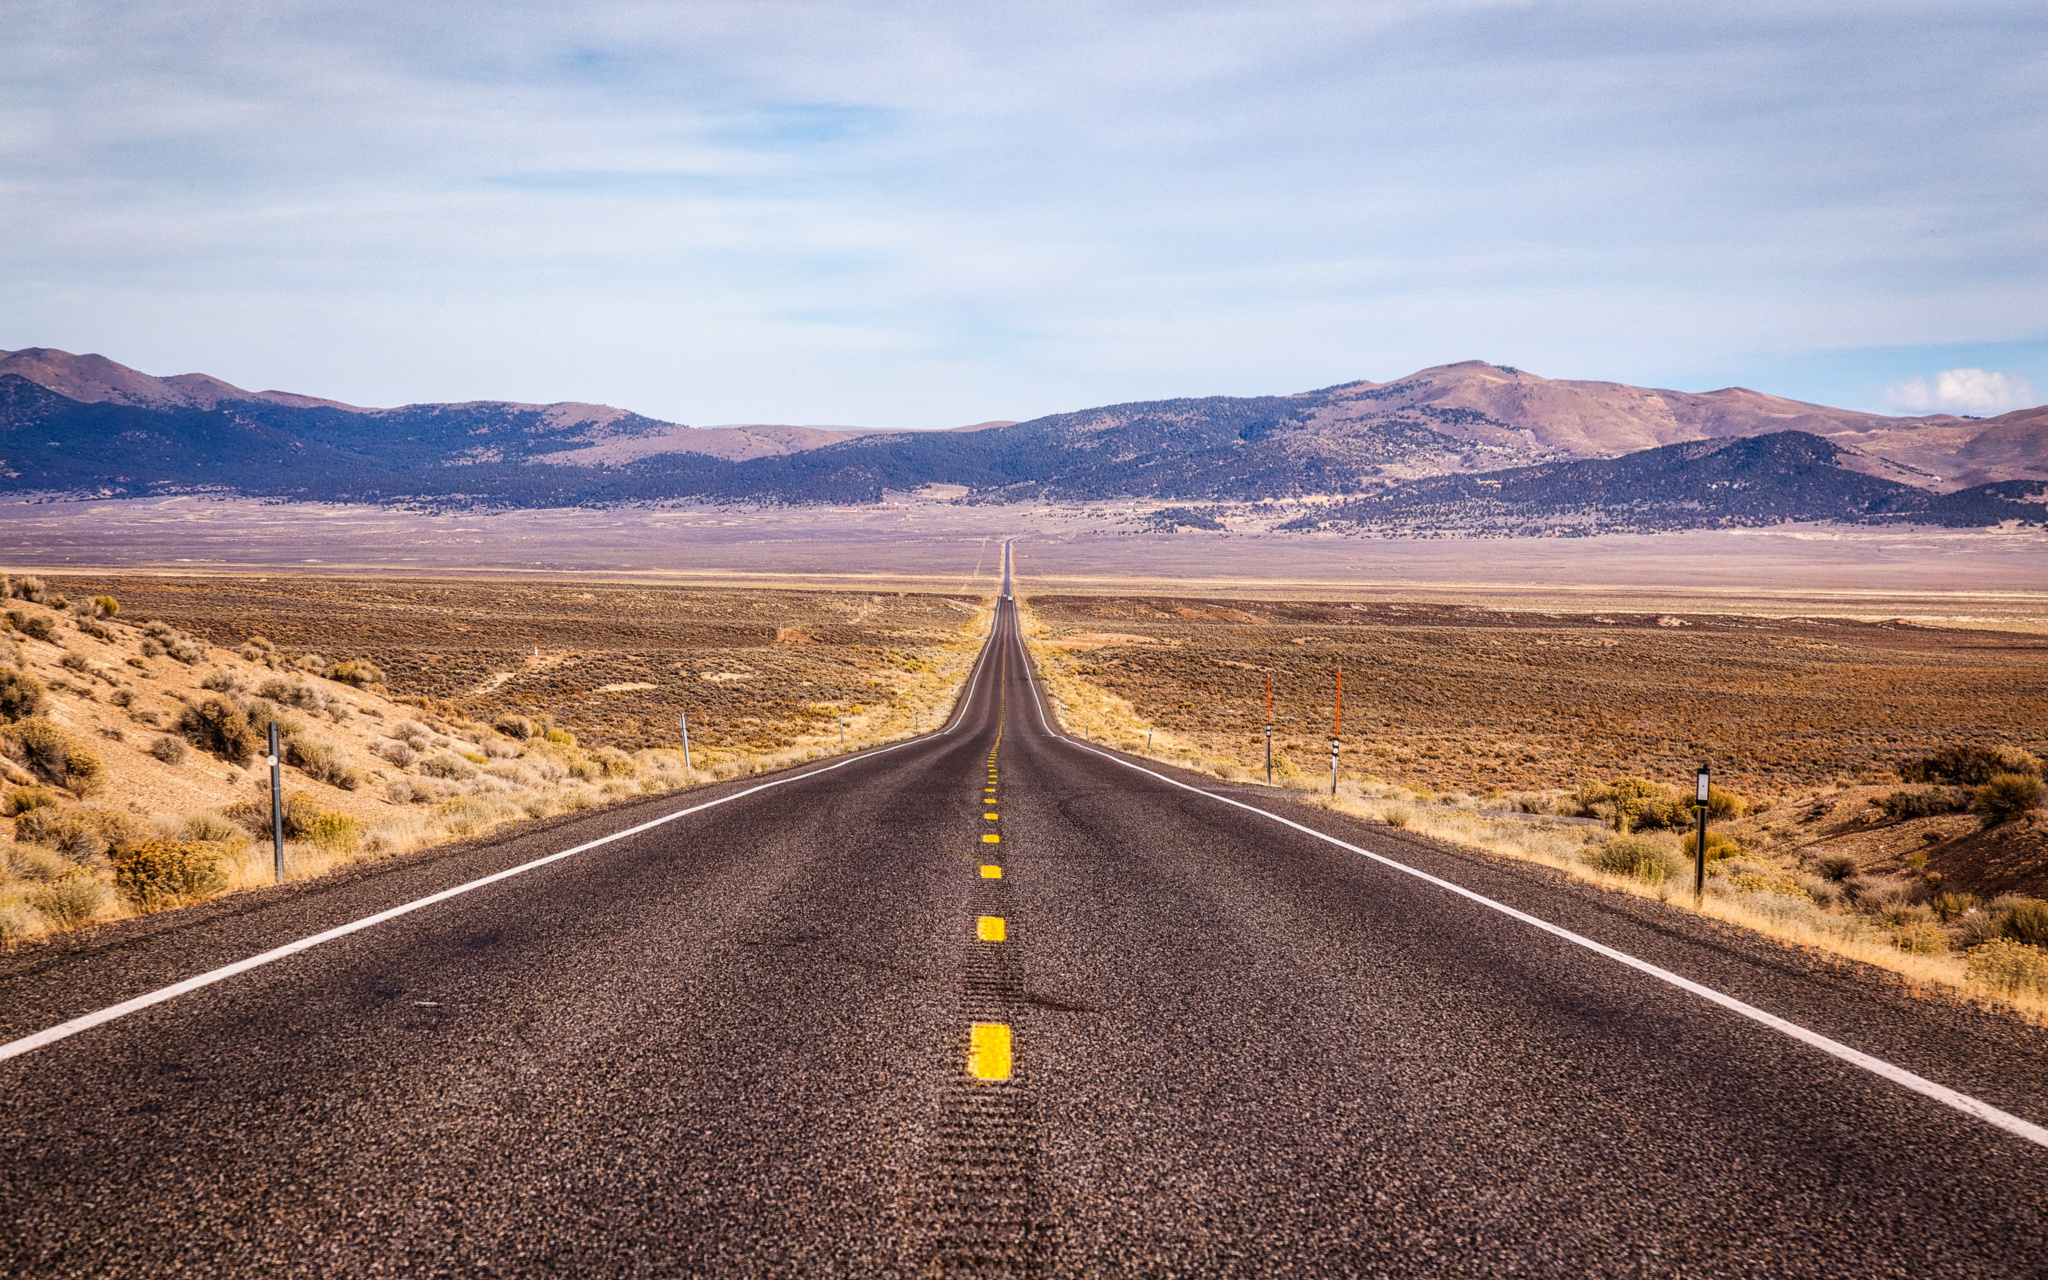 "Pictured: ""U.S. Route 50 Nevada The Loneliest Road"" by Mobilus In Mobili is licensed under CC BY-SA 2.0"